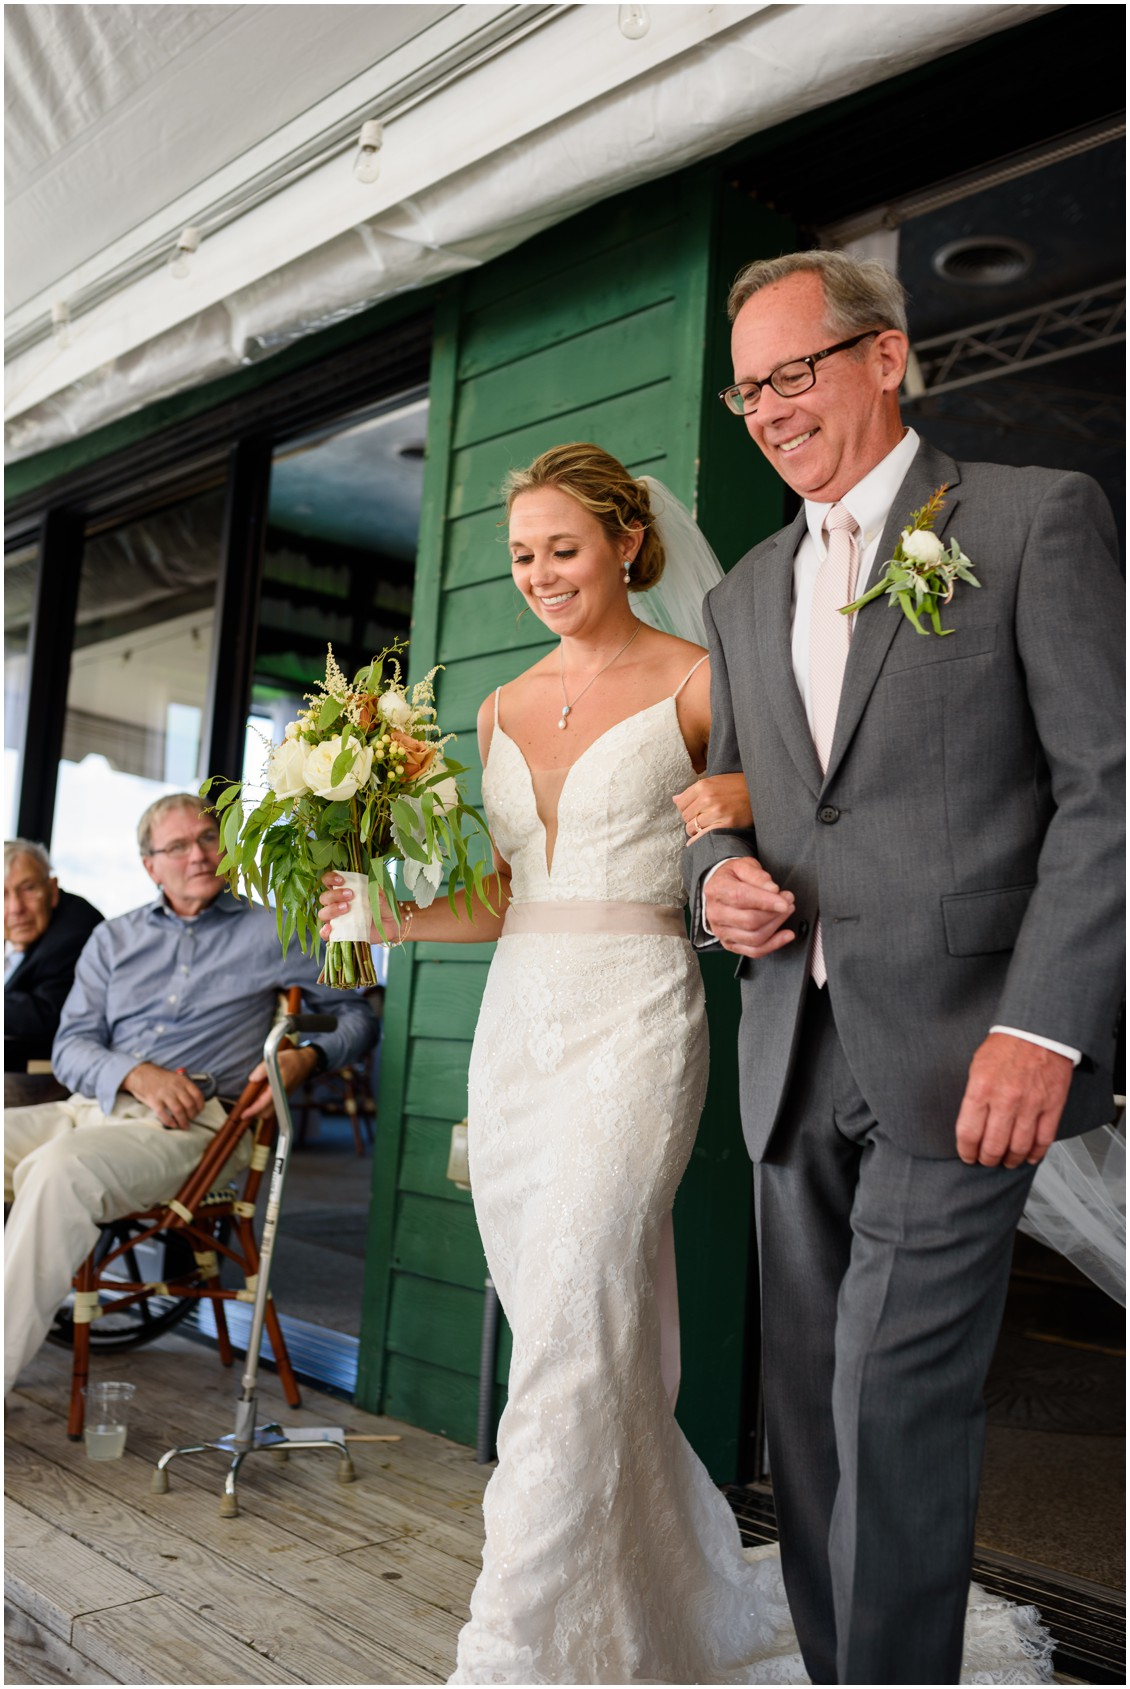 Bride and father walking up aisle| My Eastern Shore Wedding | J. Nicole Photography